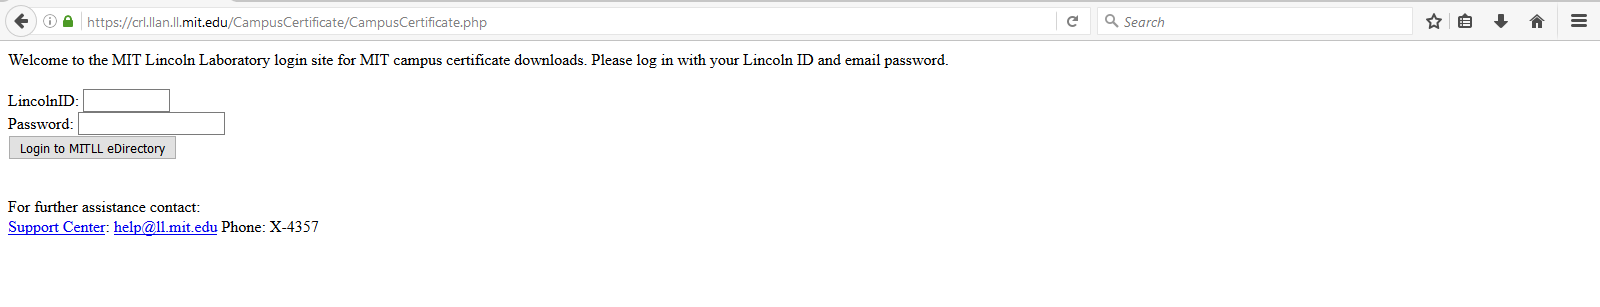 Login prompt with Lincoln credentials